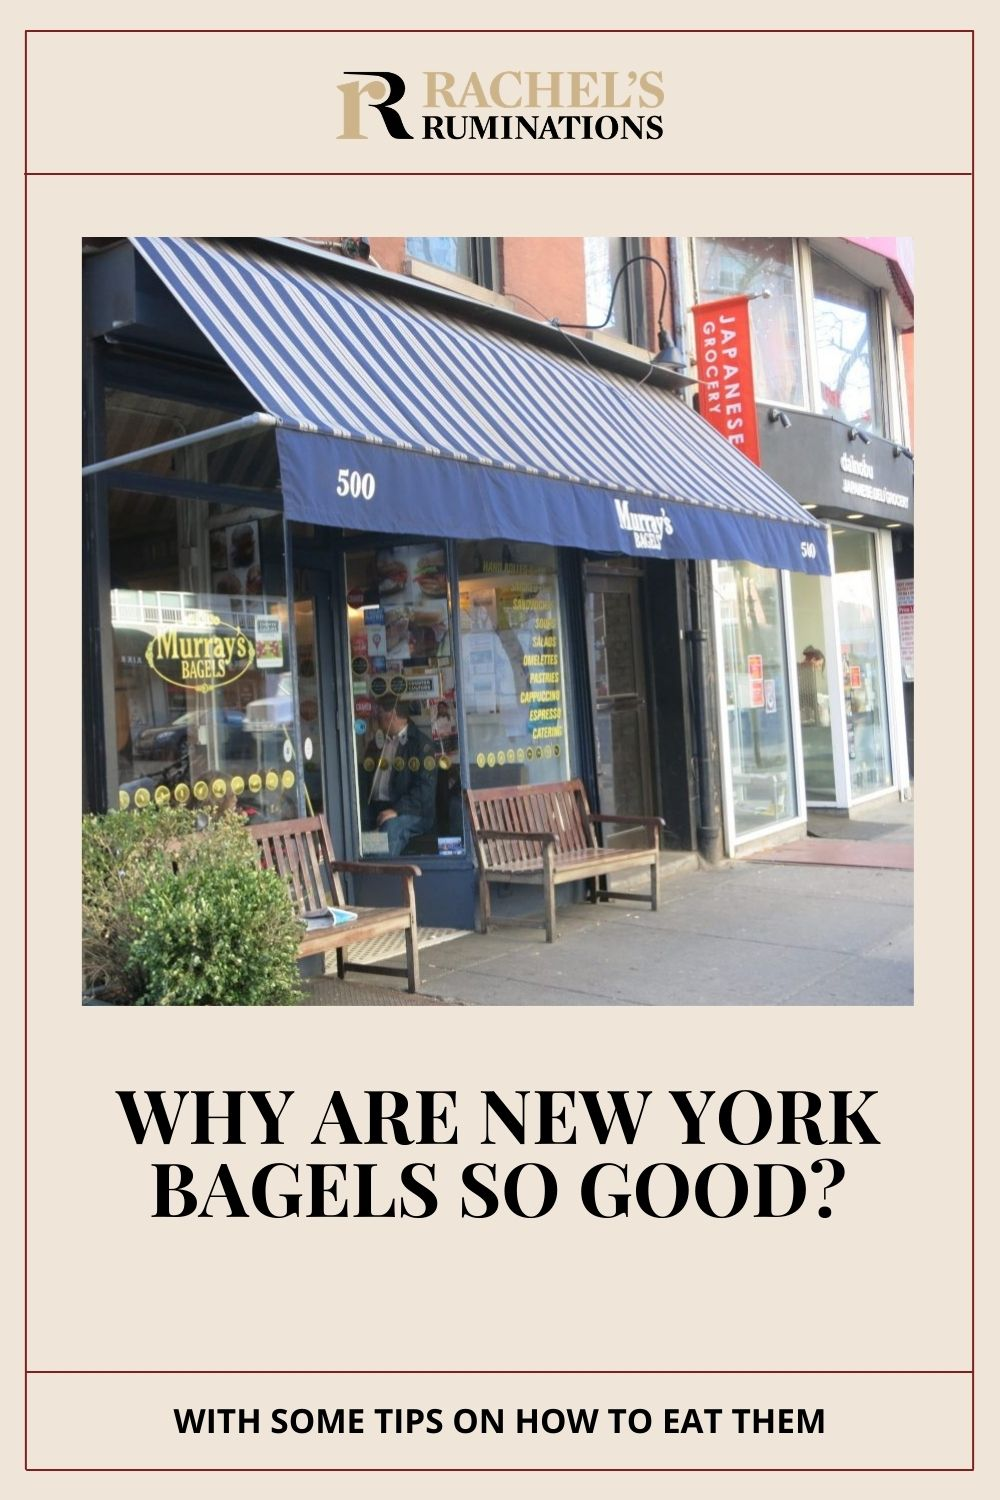 Going to New York City, I looked forward to a bagel more than anything. But why are NY bagels so good? With some tips about bagel-eating! via @rachelsruminations